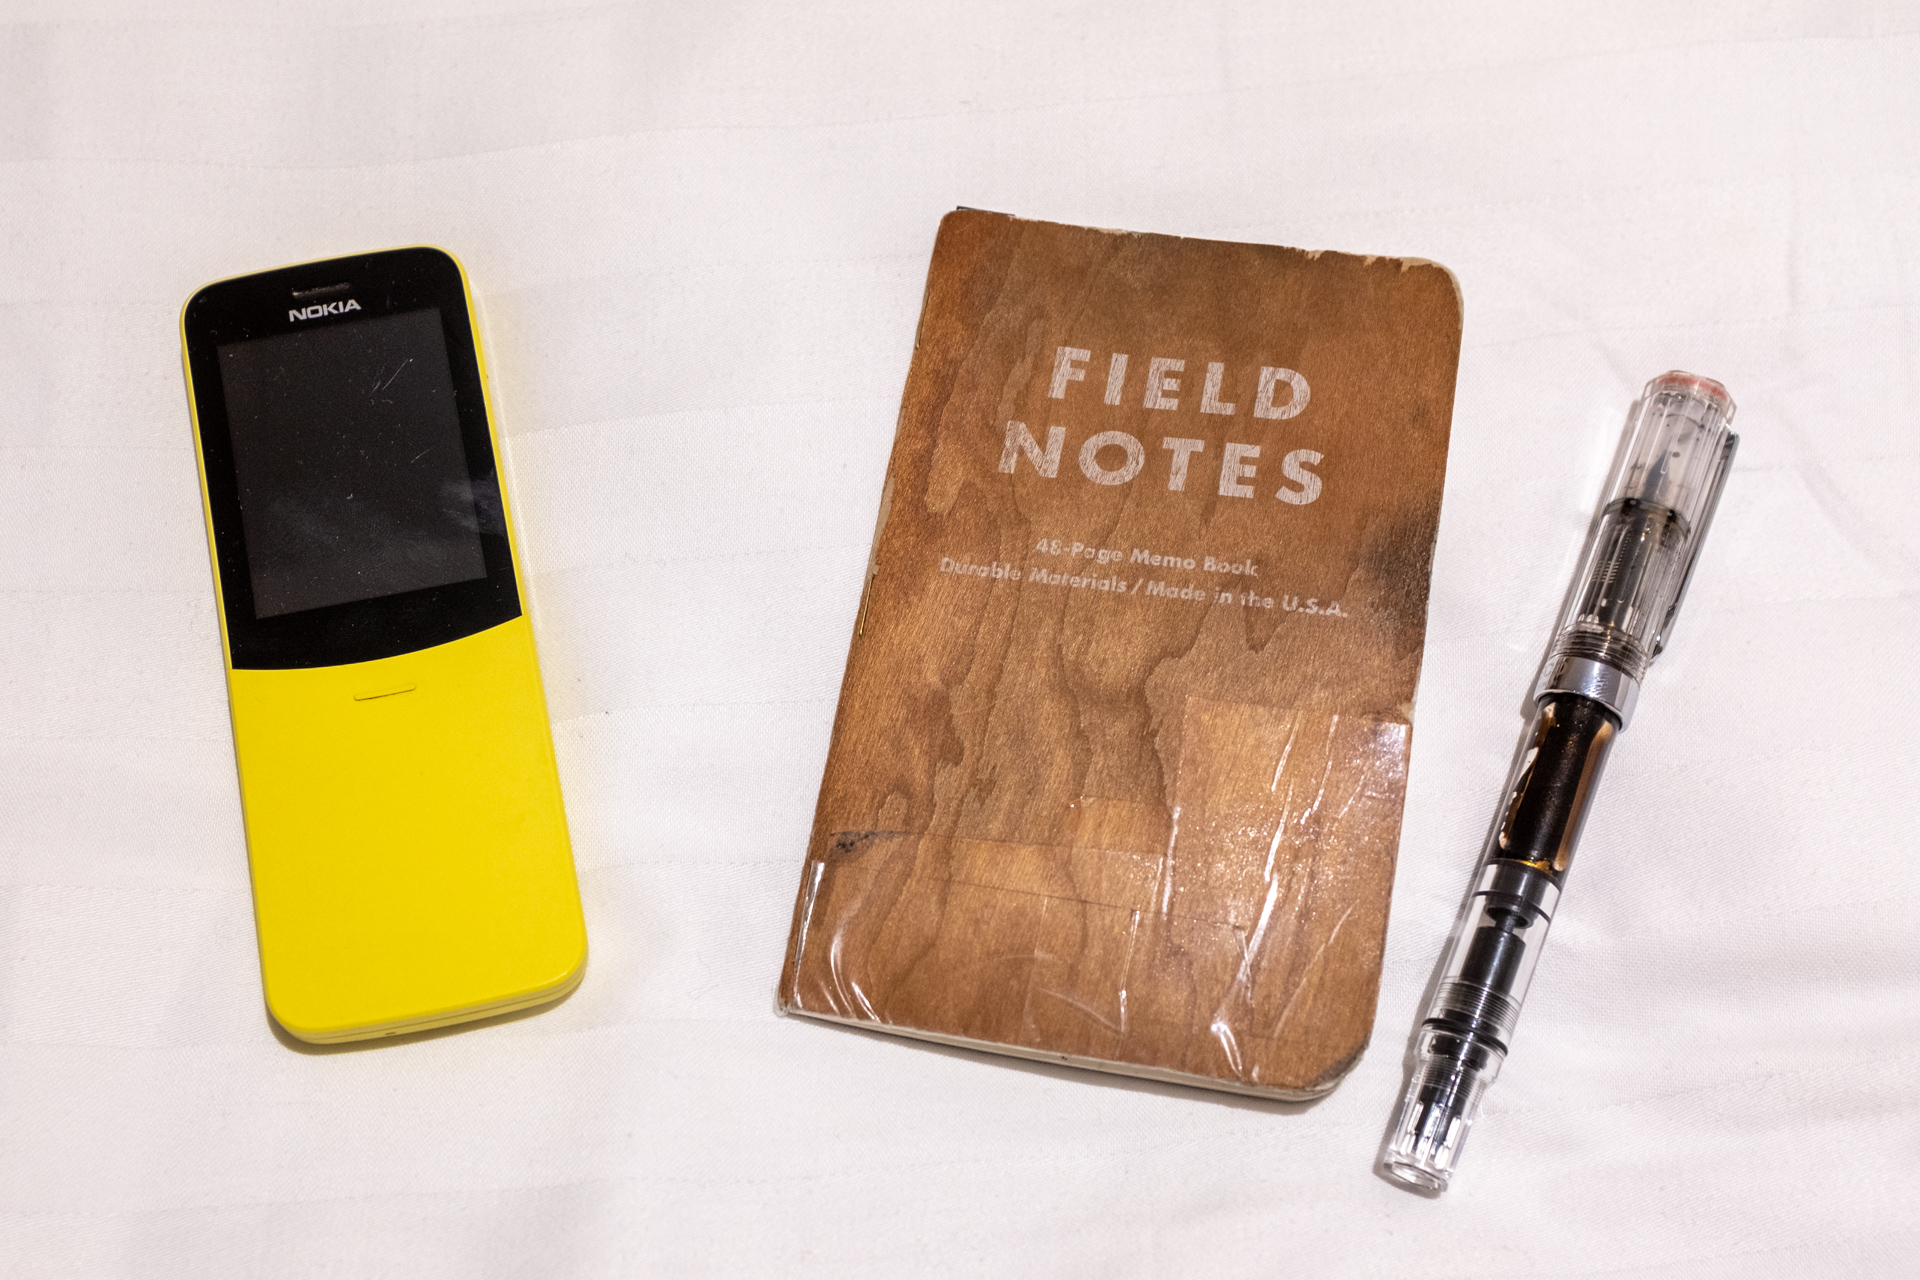 Nokia phone, notebook and pen